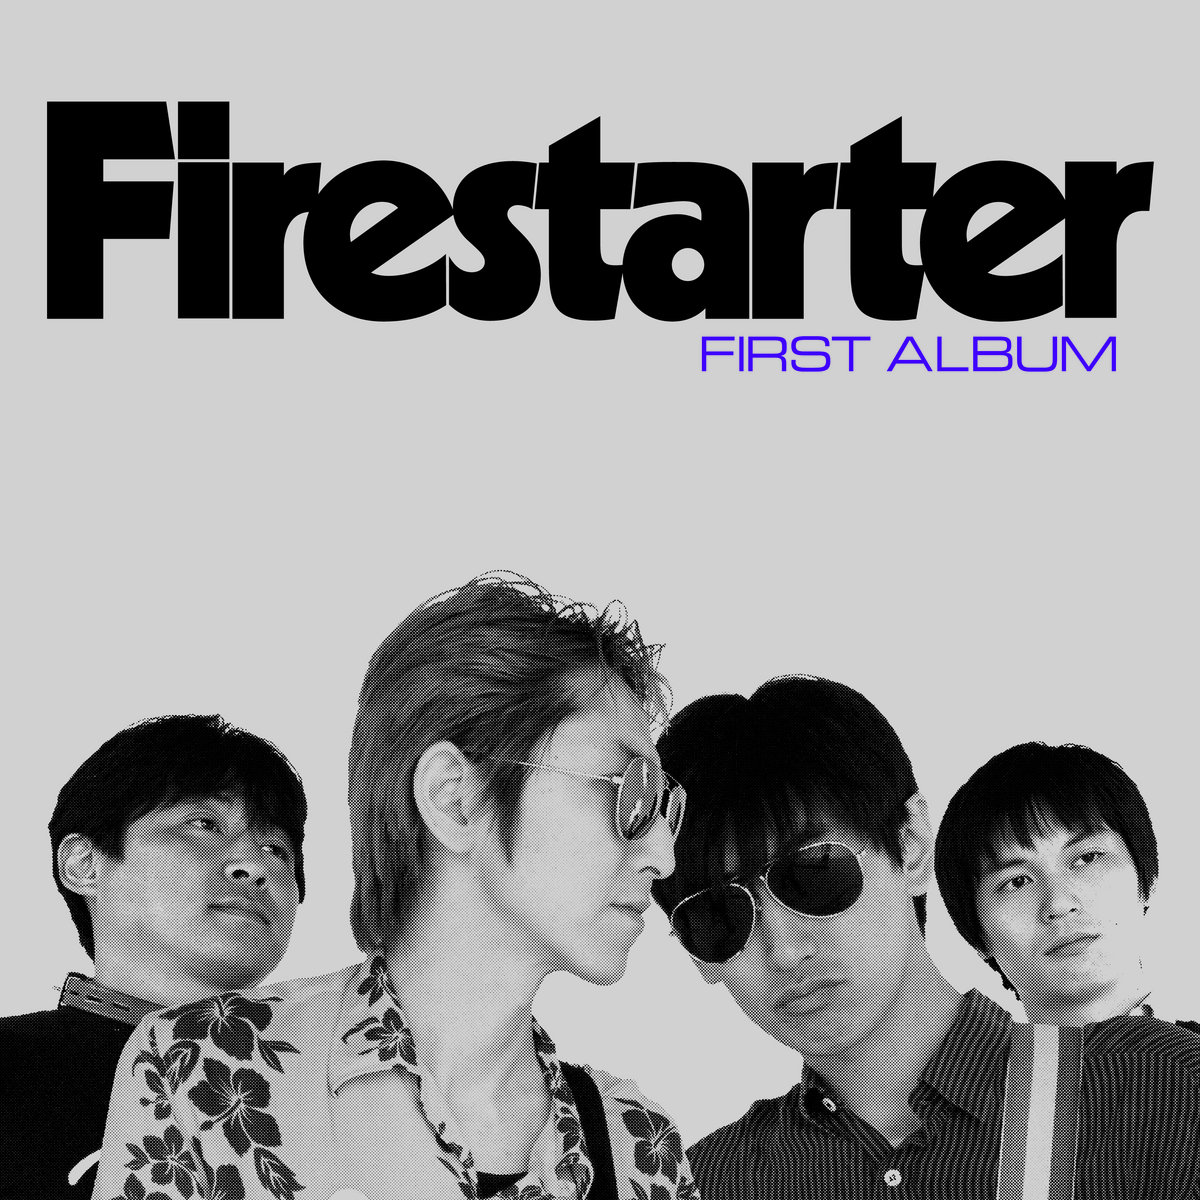 「FIRESTARTER FIRST ALBUM」の画像検索結果